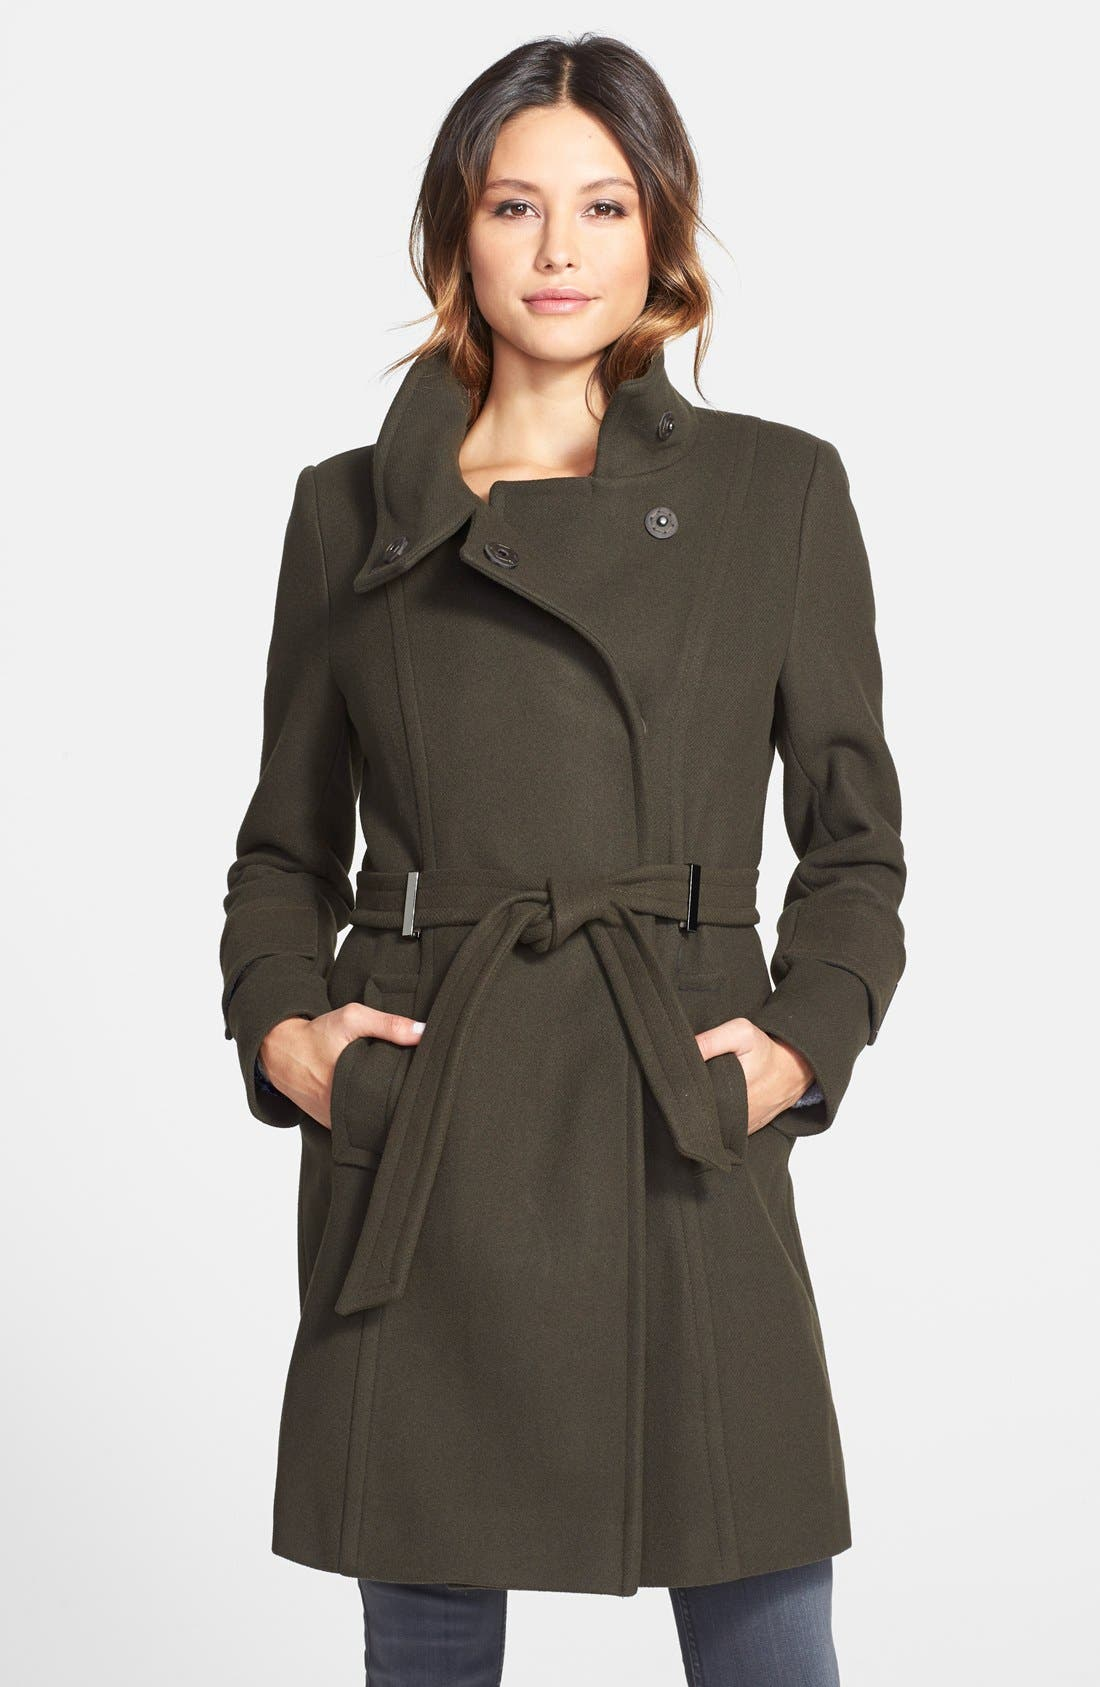 Alternate Image 1 Selected - Elie Tahari 'India' Stand Collar Belted Wool Blend Coat